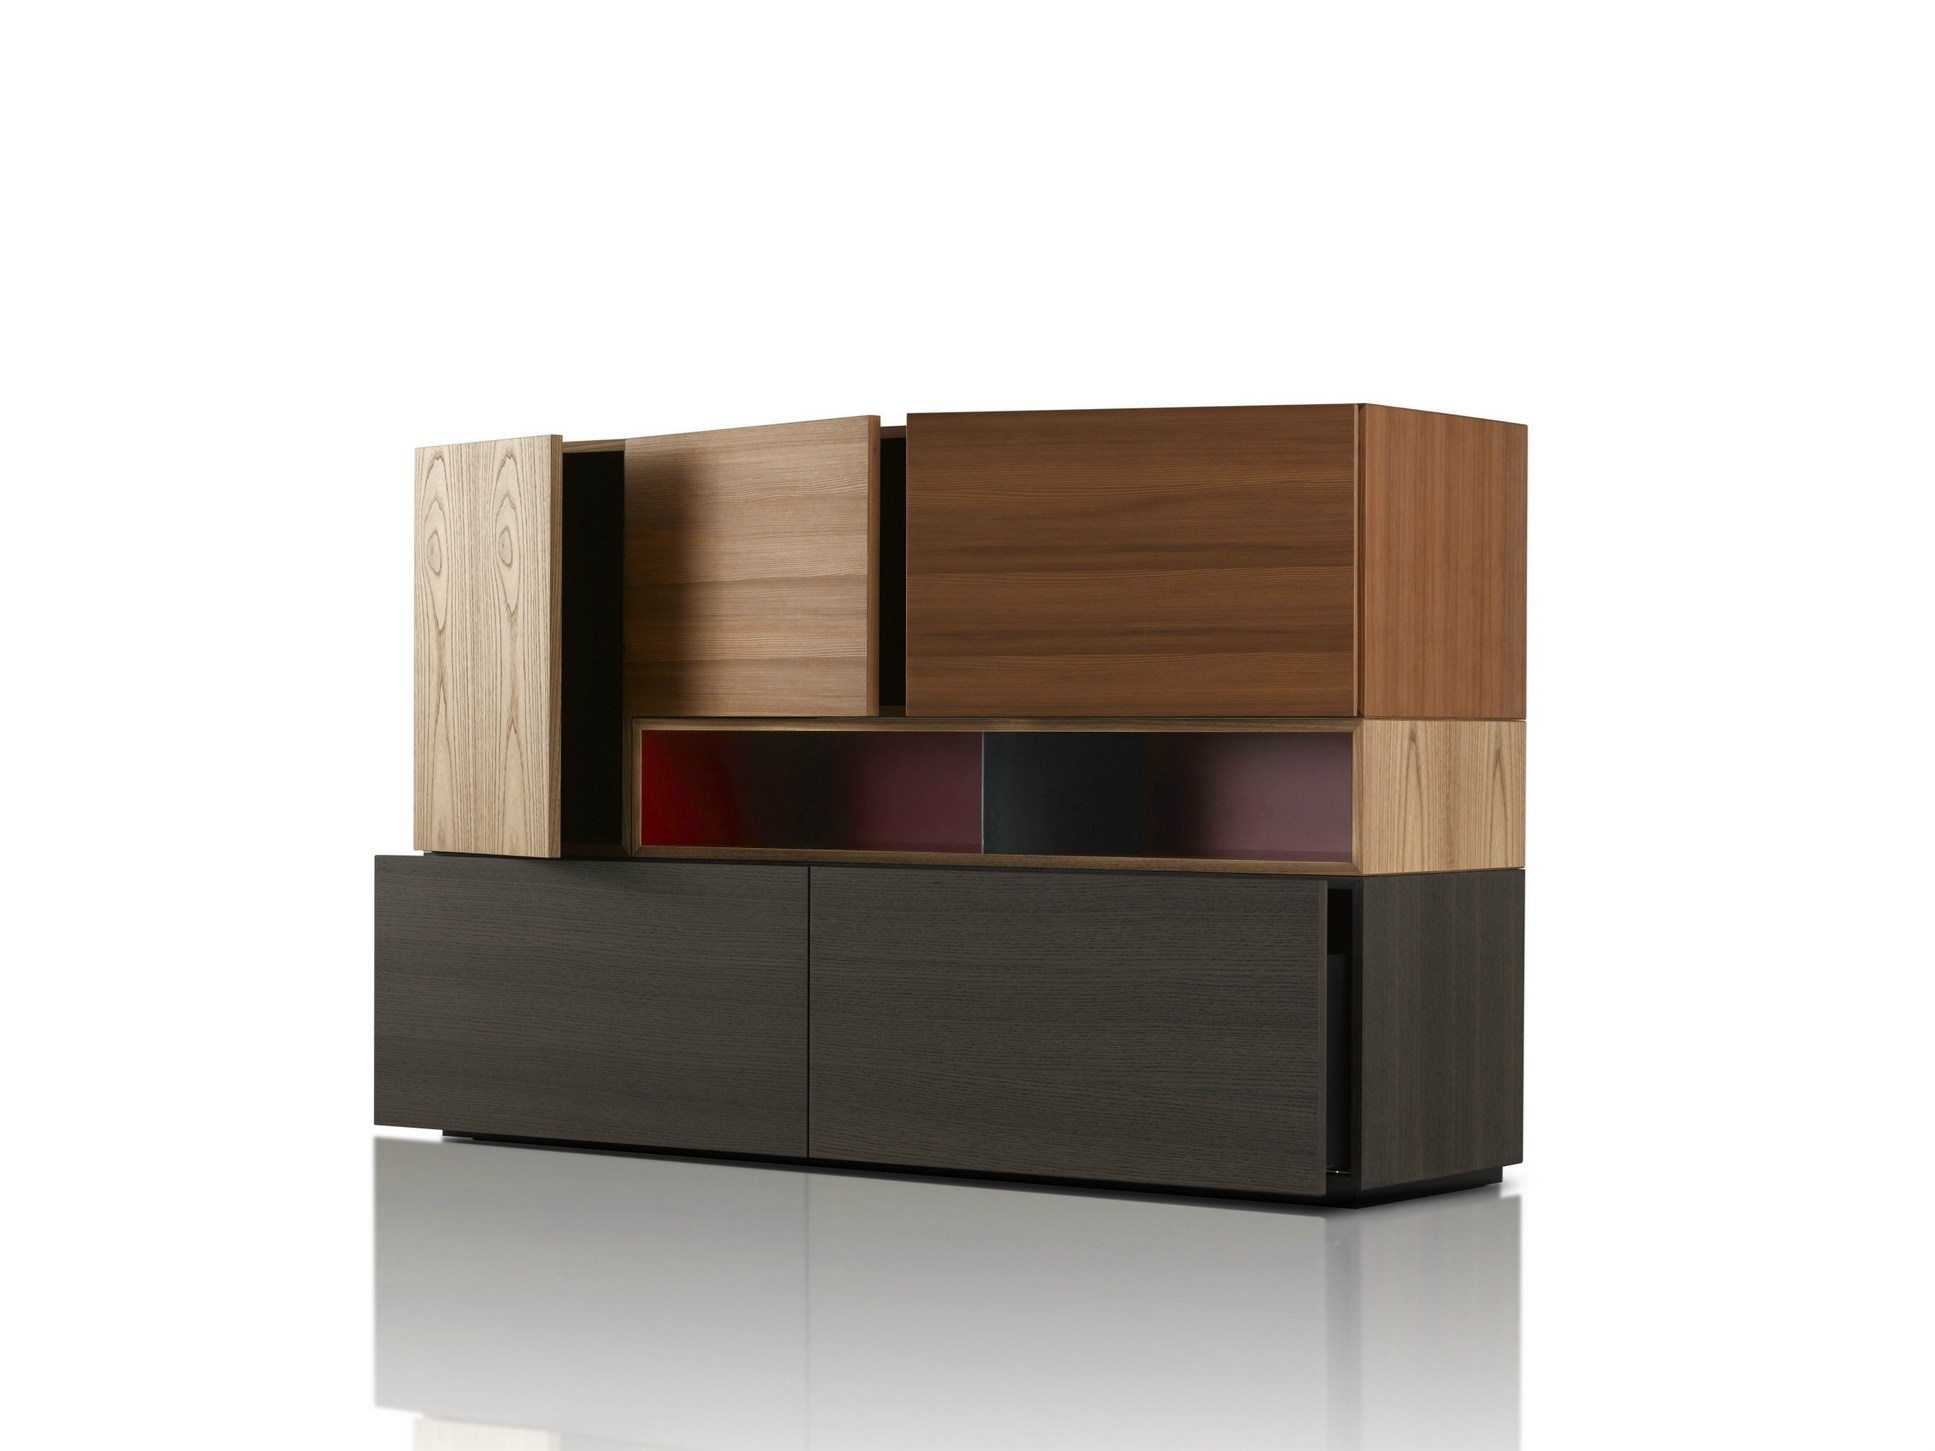 Modern highboard by porro design piero lissoni for Modern furniture design